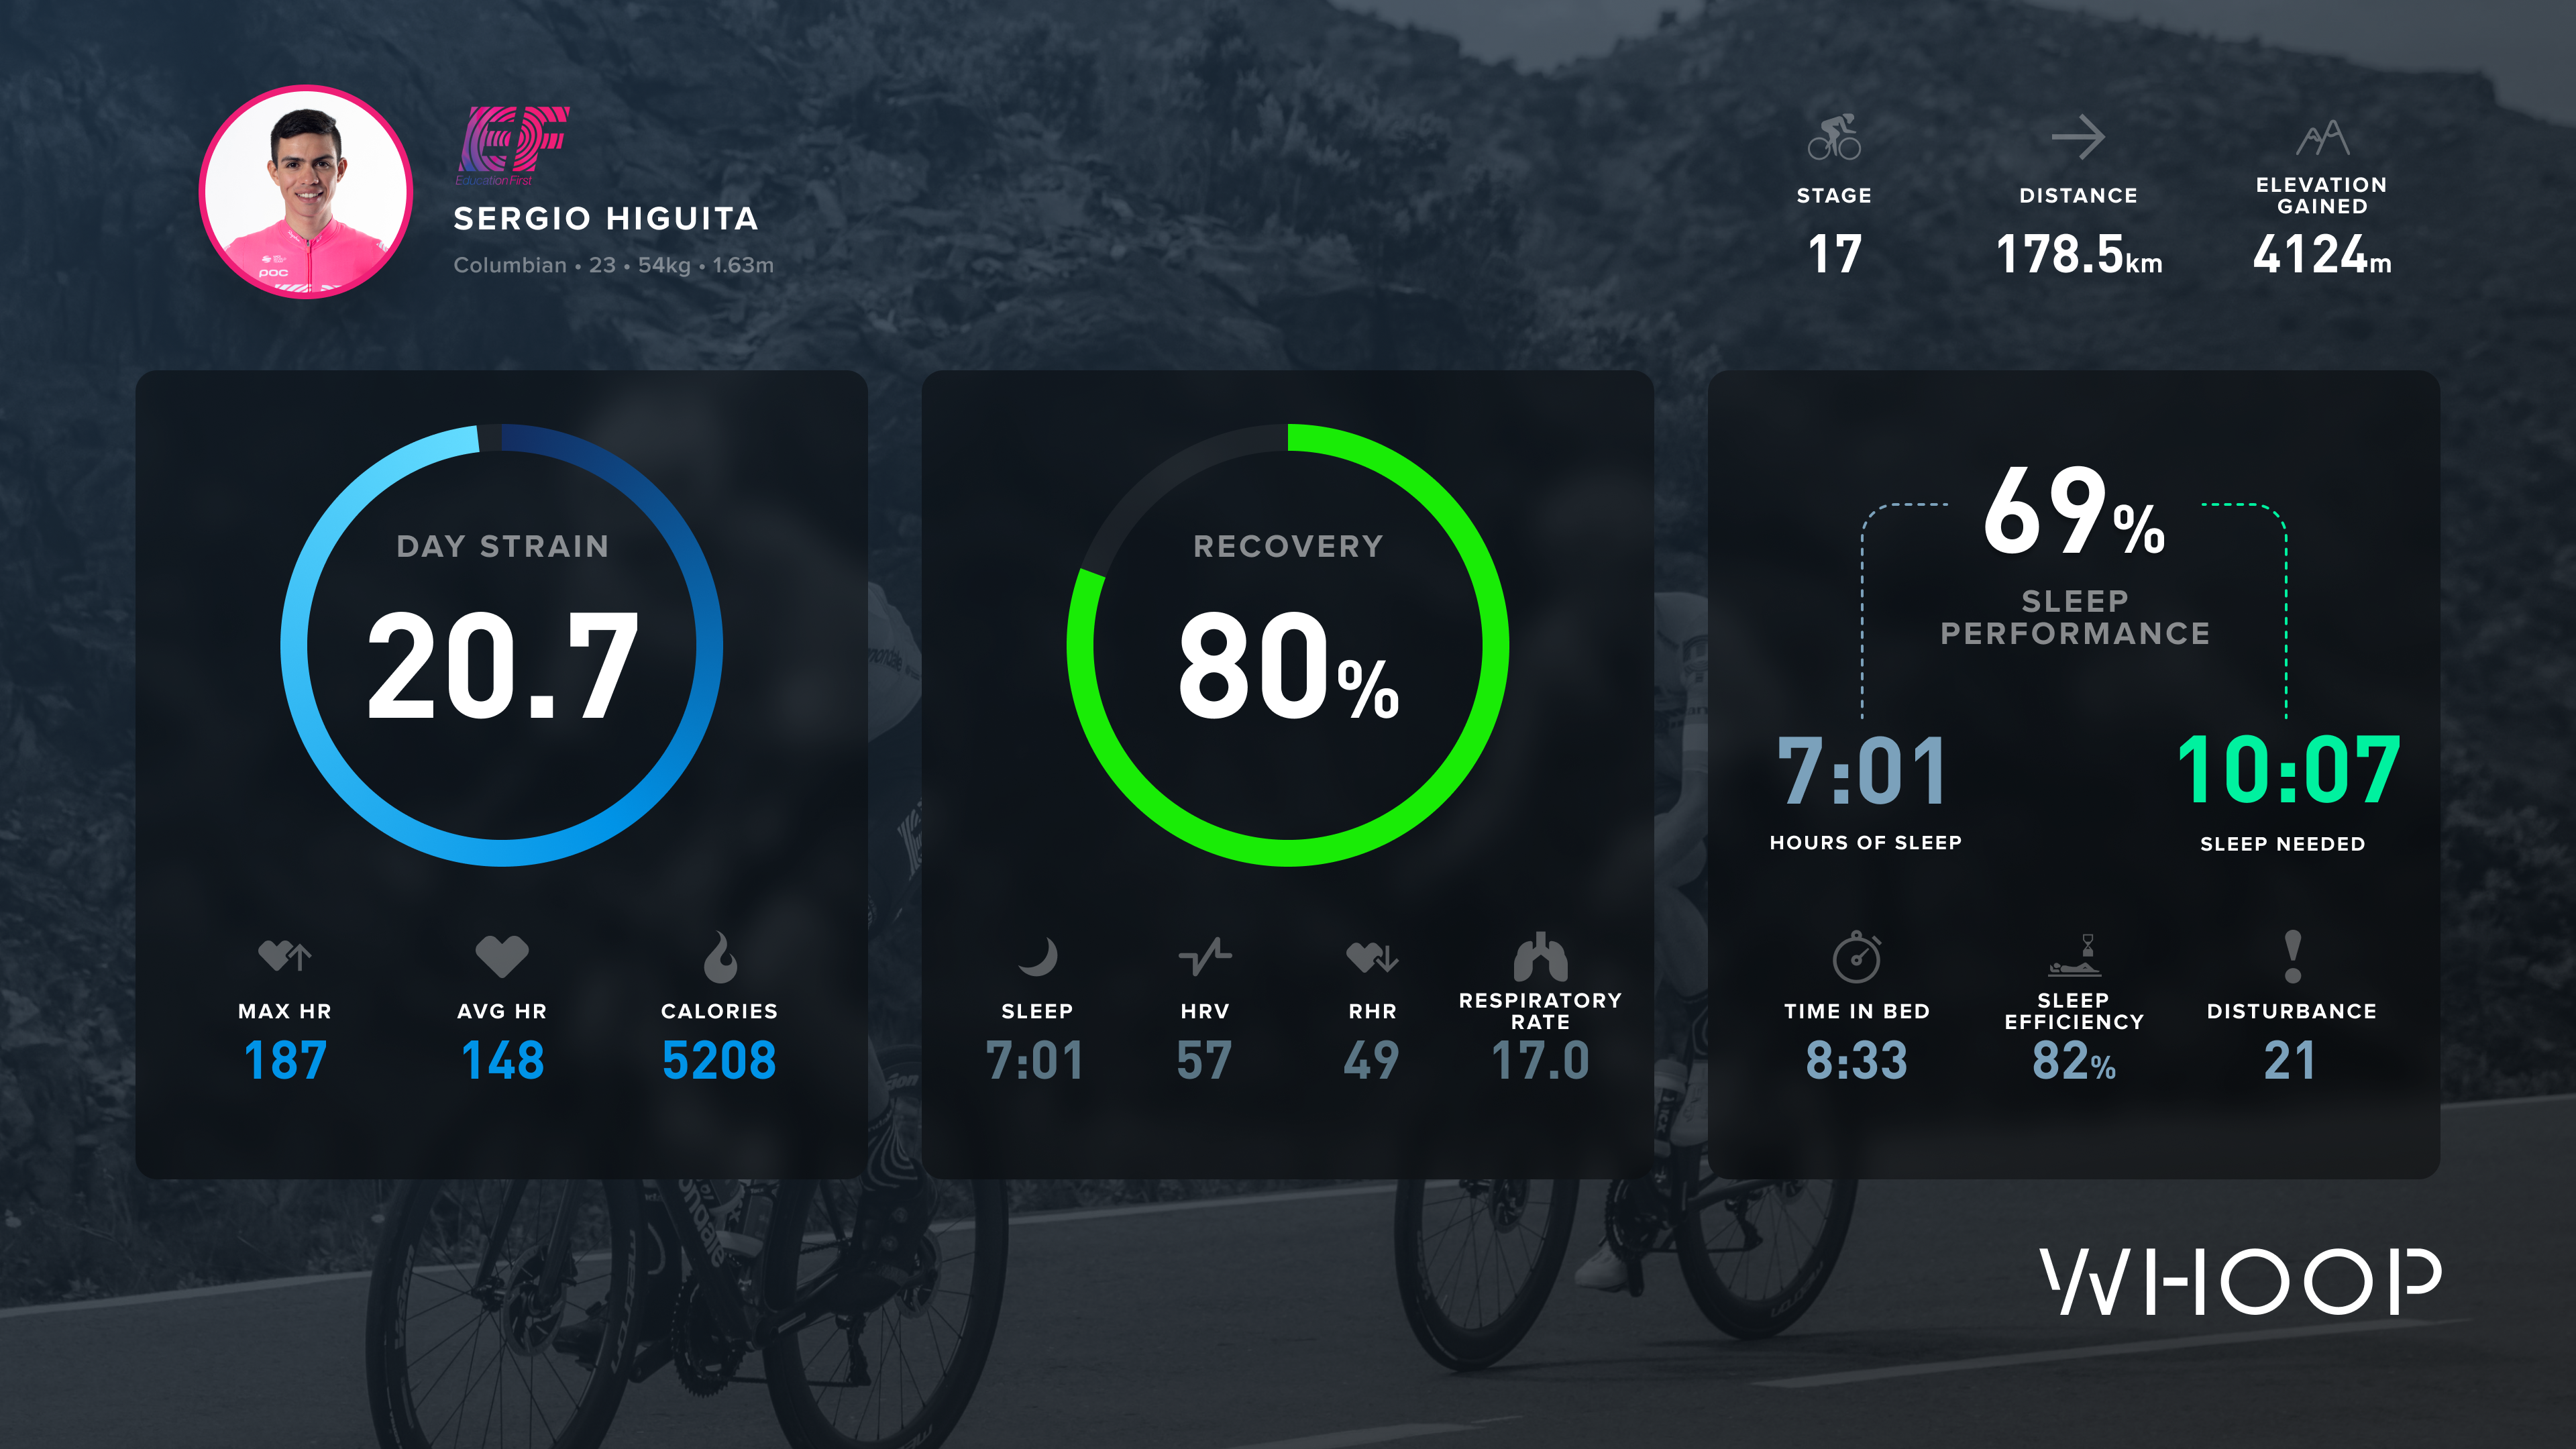 Sergio Higuita's WHOOP data from stage 17